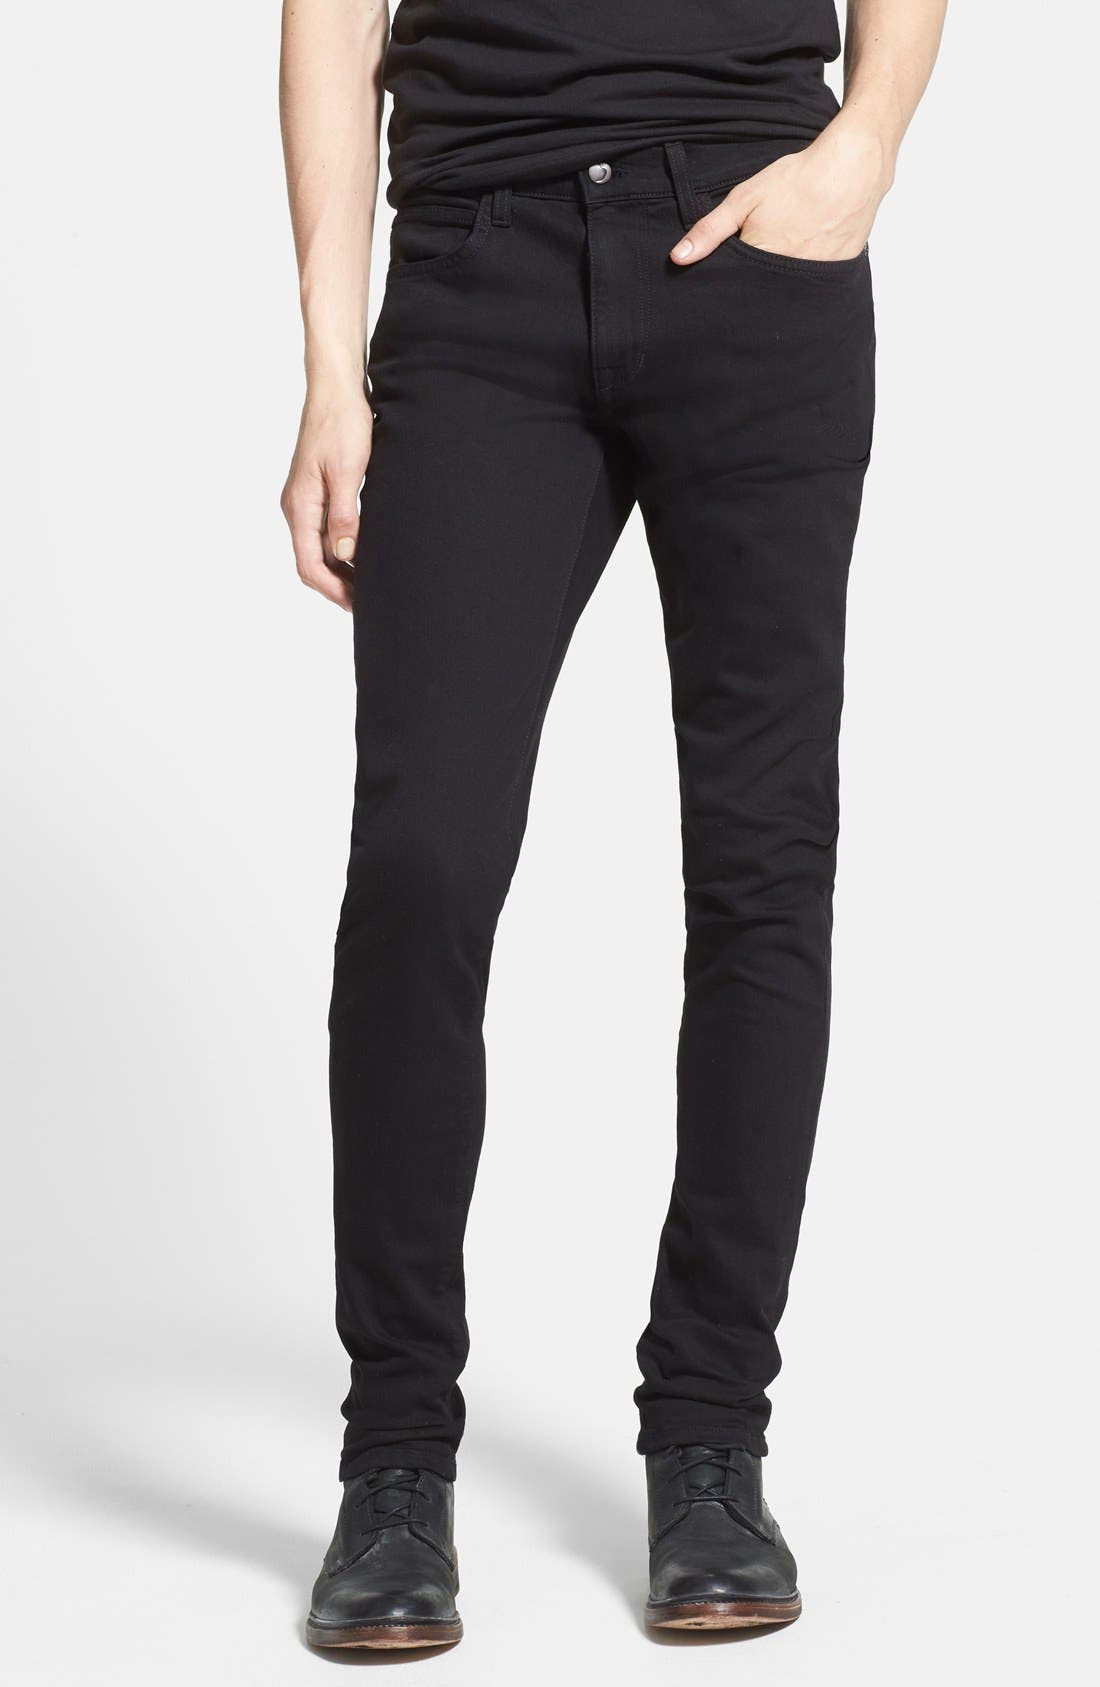 Main Image - Joe's 'Slim' Skinny Fit Jeans (Jet Black)